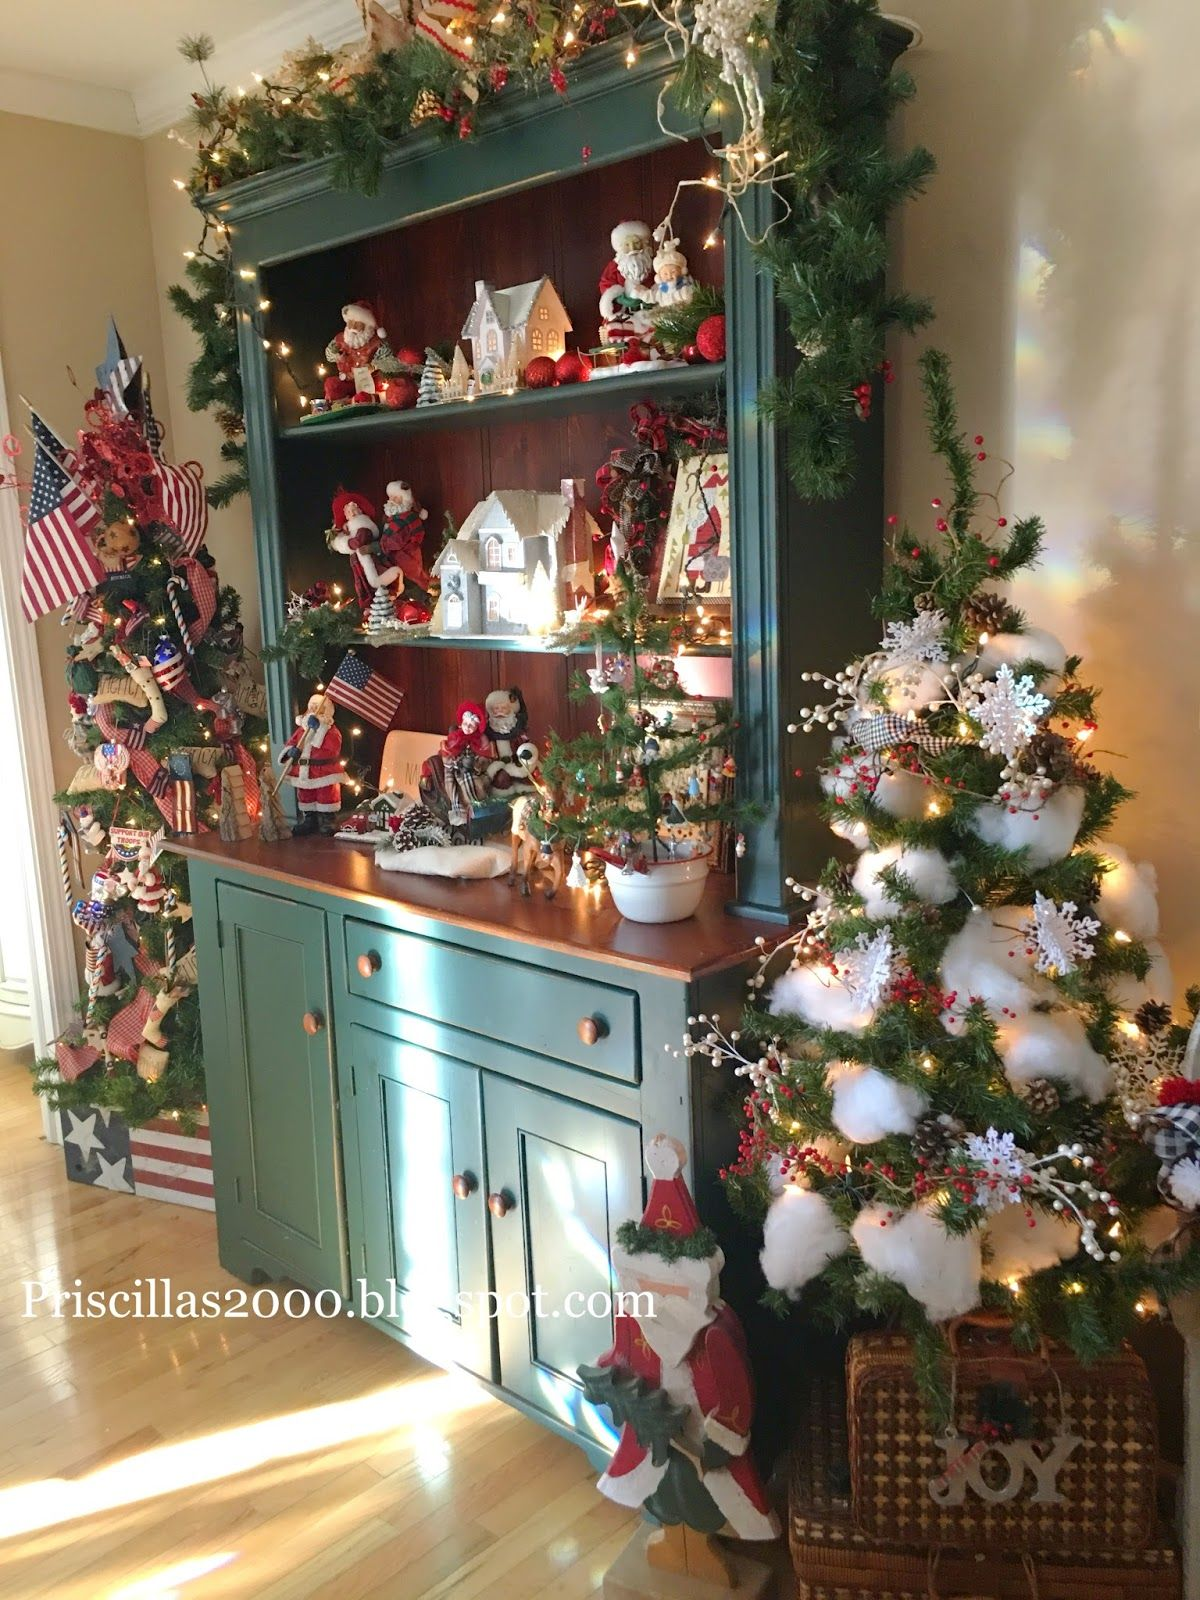 Christmas tree Good morning The other 2